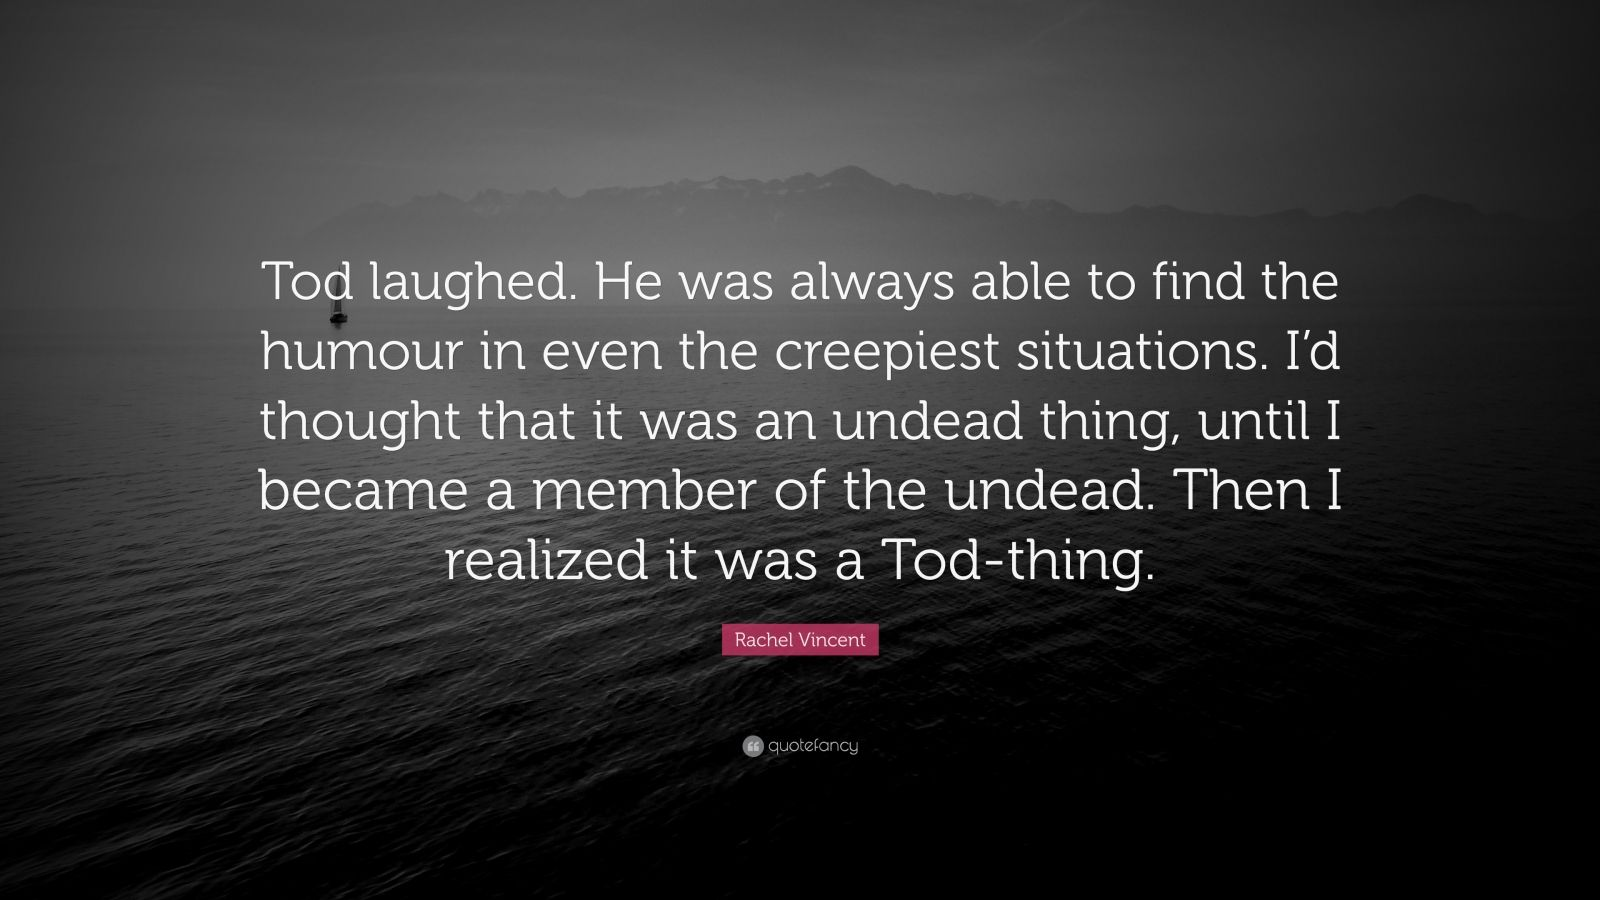 """Rachel Vincent Quote: """"Tod laughed. He was always able to find the humour in even the creepiest situations. I'd thought that it was an undead thing, until I became a member of the undead. Then I realized it was a Tod-thing."""""""